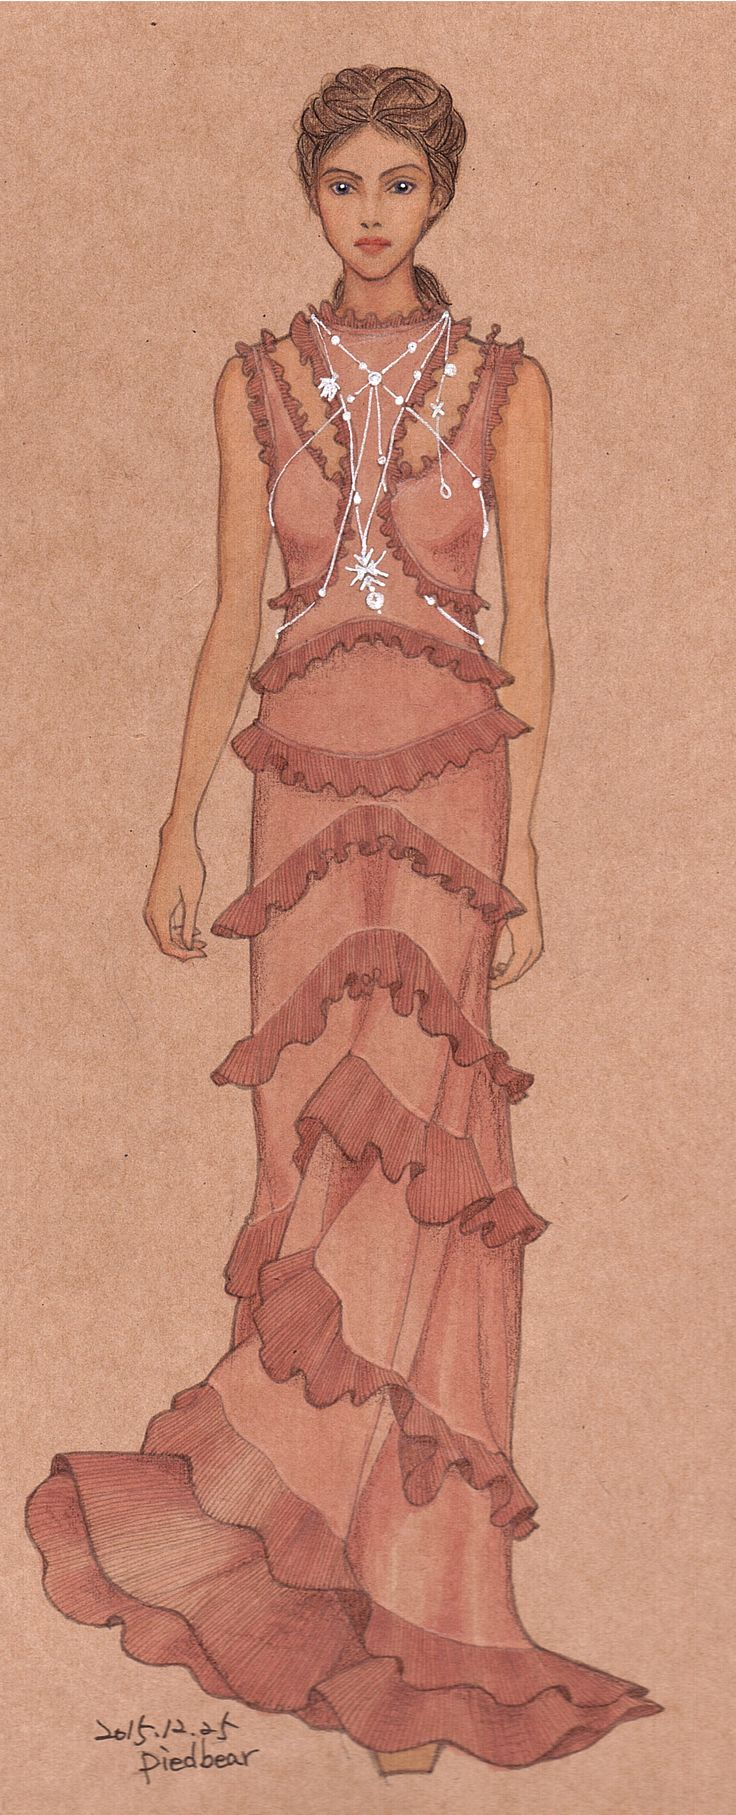 #2016 S/S #AlexanderMcQueen #fashion #fashionillustration #fashiondrawing #fashionsketch #readytowear @drawadot